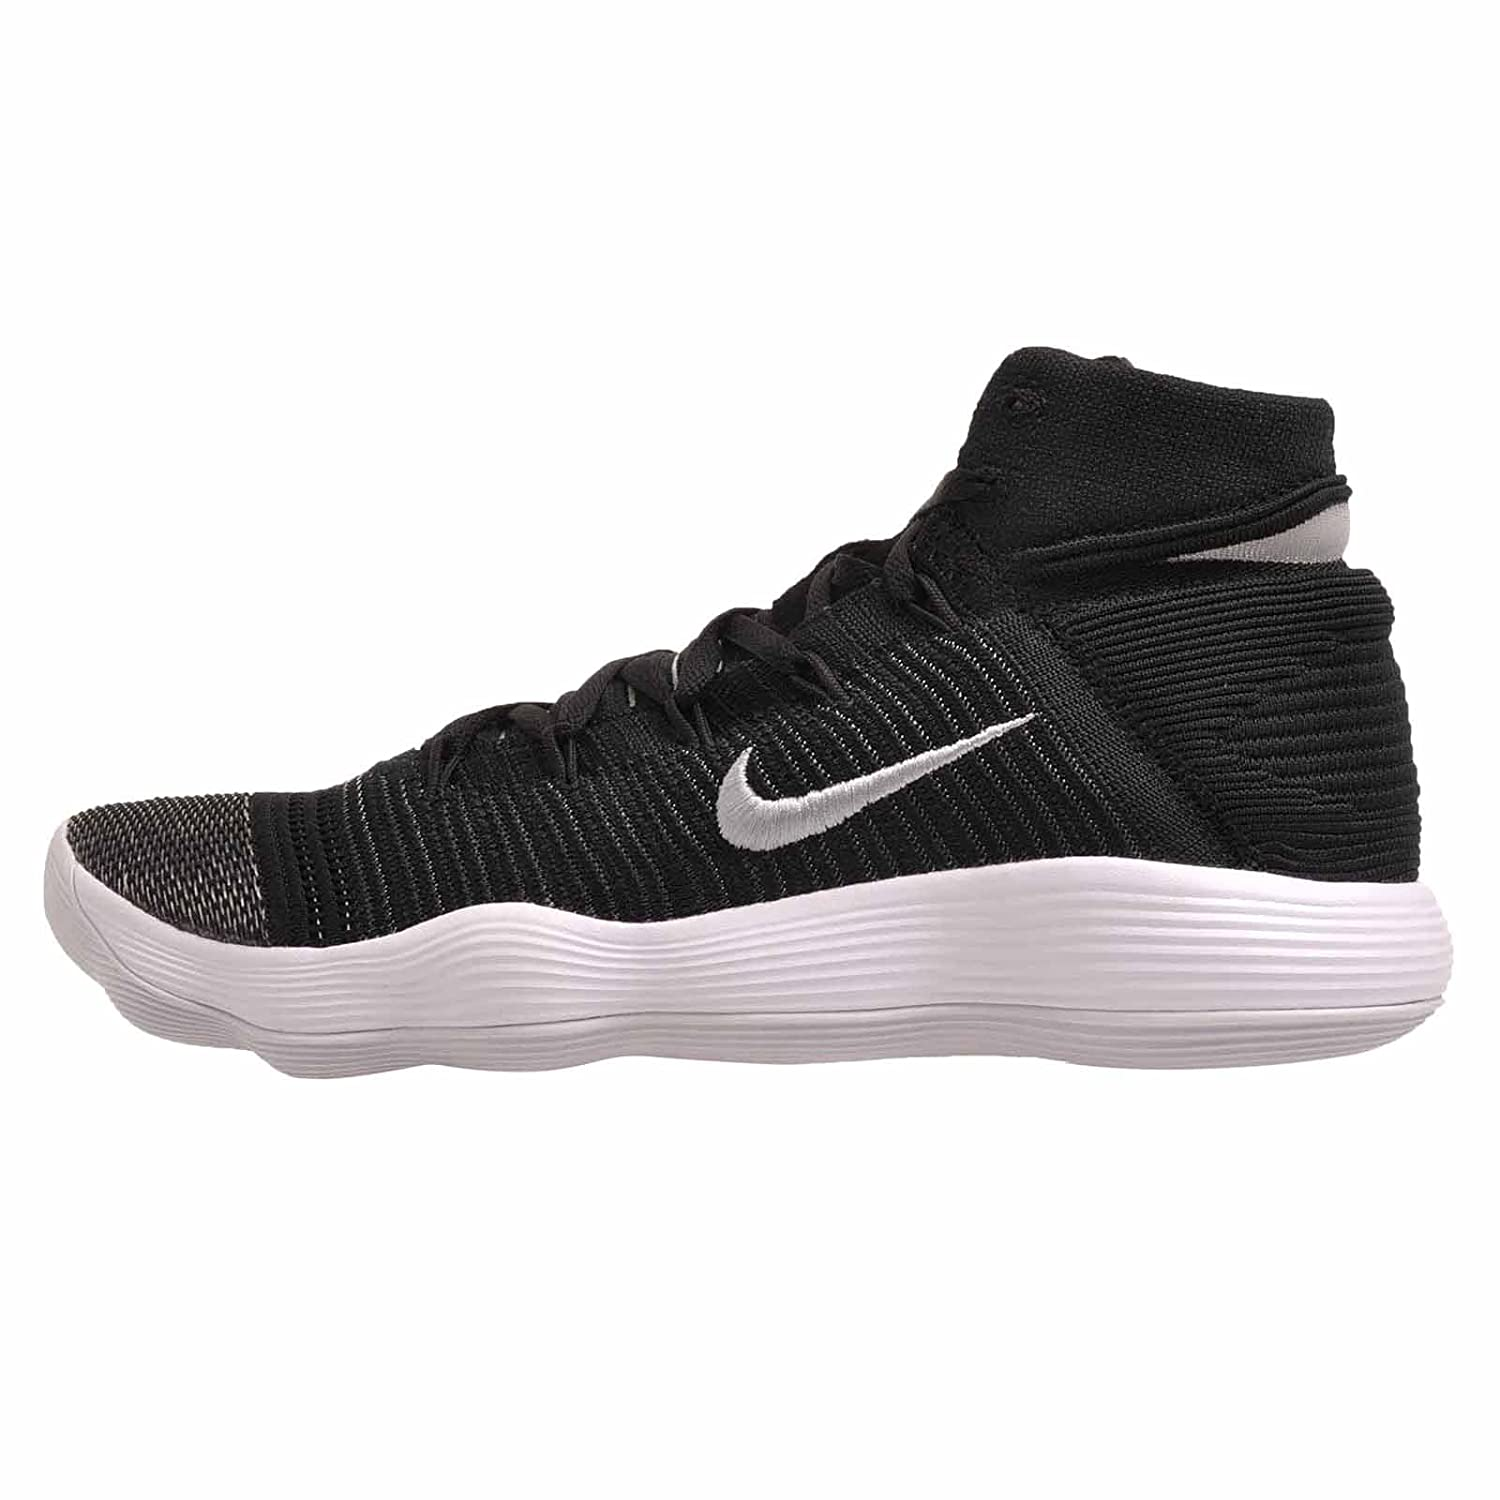 53d74a2dc11f Nike Hyperdunk 2017 Flyknit Size 11.5 Mens Basketball Shoe Black Metallic  Silver Shoes  Buy Online at Low Prices in India - Amazon.in